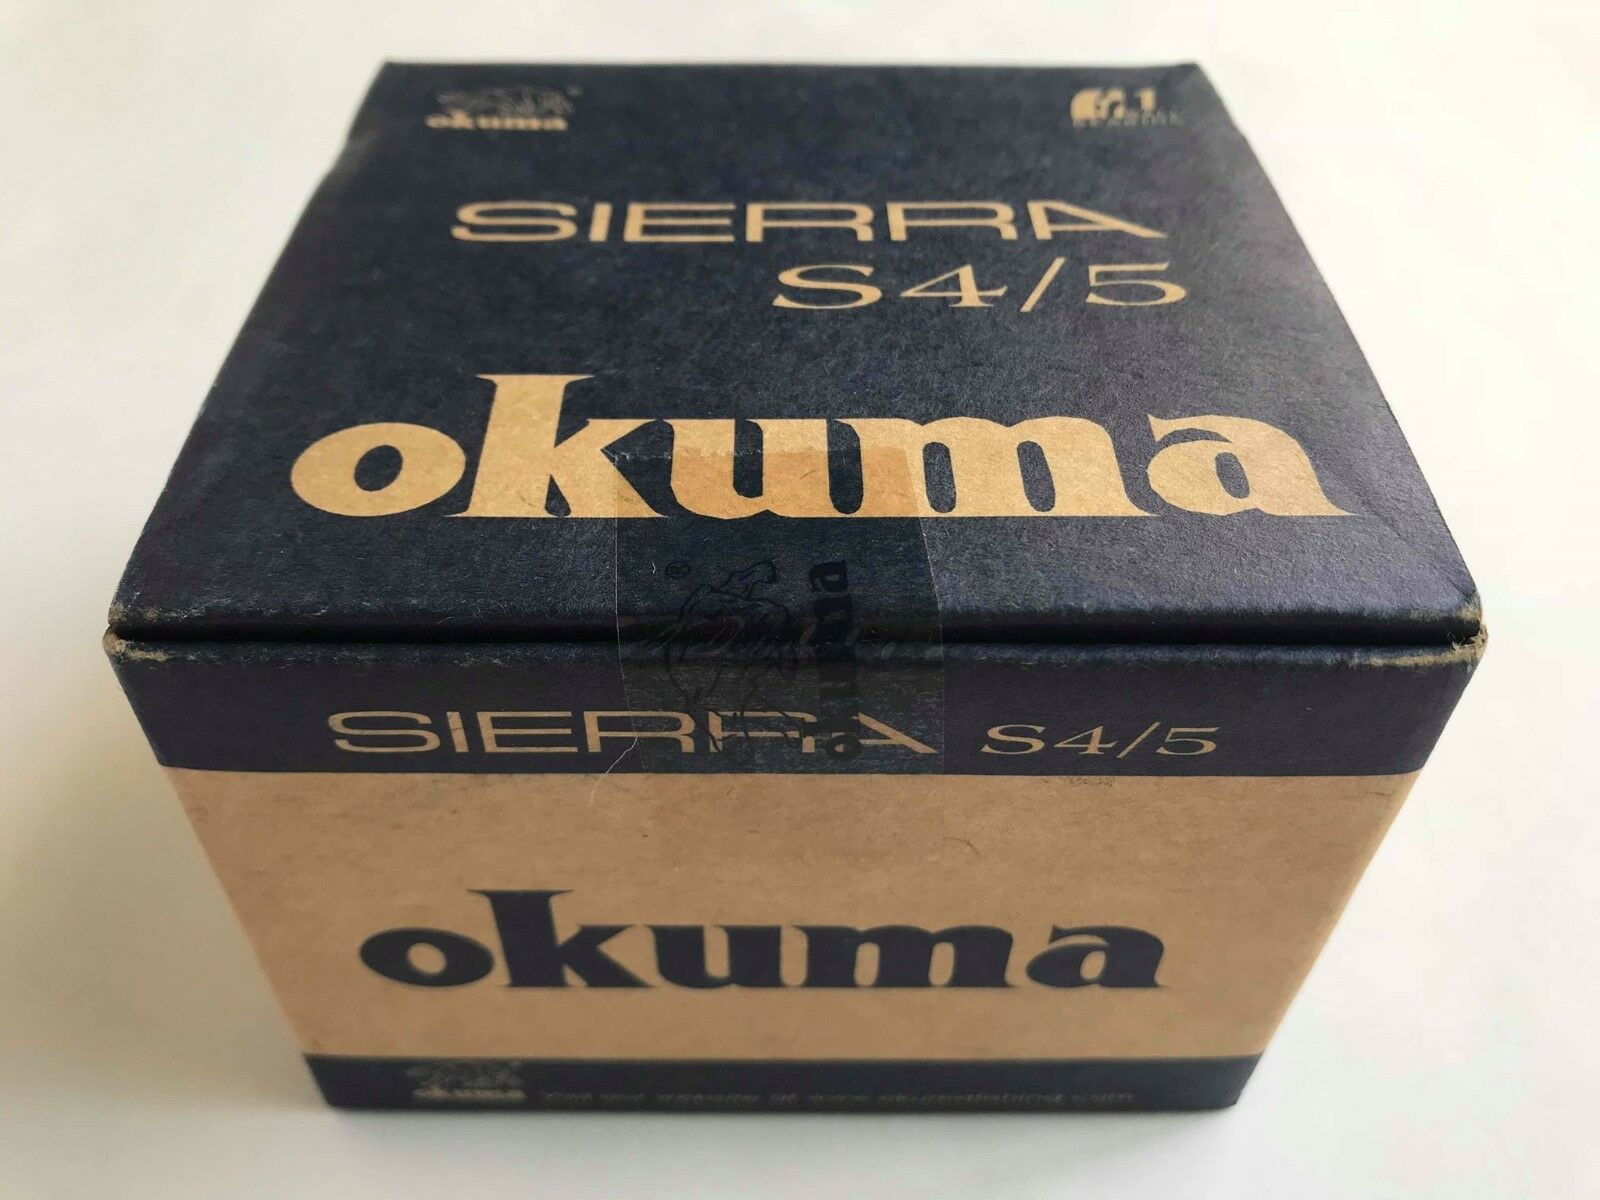 Okuma Sierra fishing Reel S4 5 fish 1 Ball  Bearing Stainless Steel Fly line 4.5  very popular